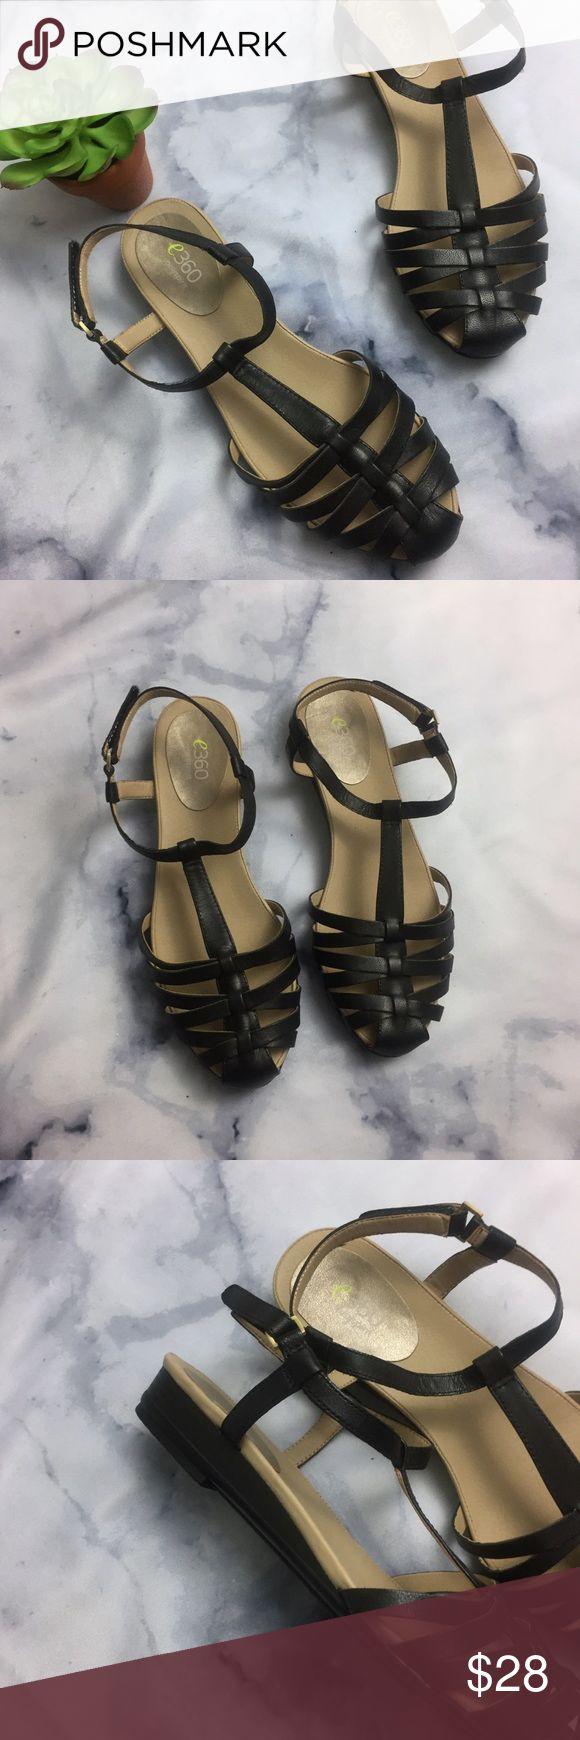 Easy Spirit e360 Black Leather Closed Toe Sandal Easy Spirit. Size 8.5. e360. Danette sandal. Black leather. Straps. T strap. Round toe. Buckle closure. Preowned. Easy Spirit Shoes Sandals